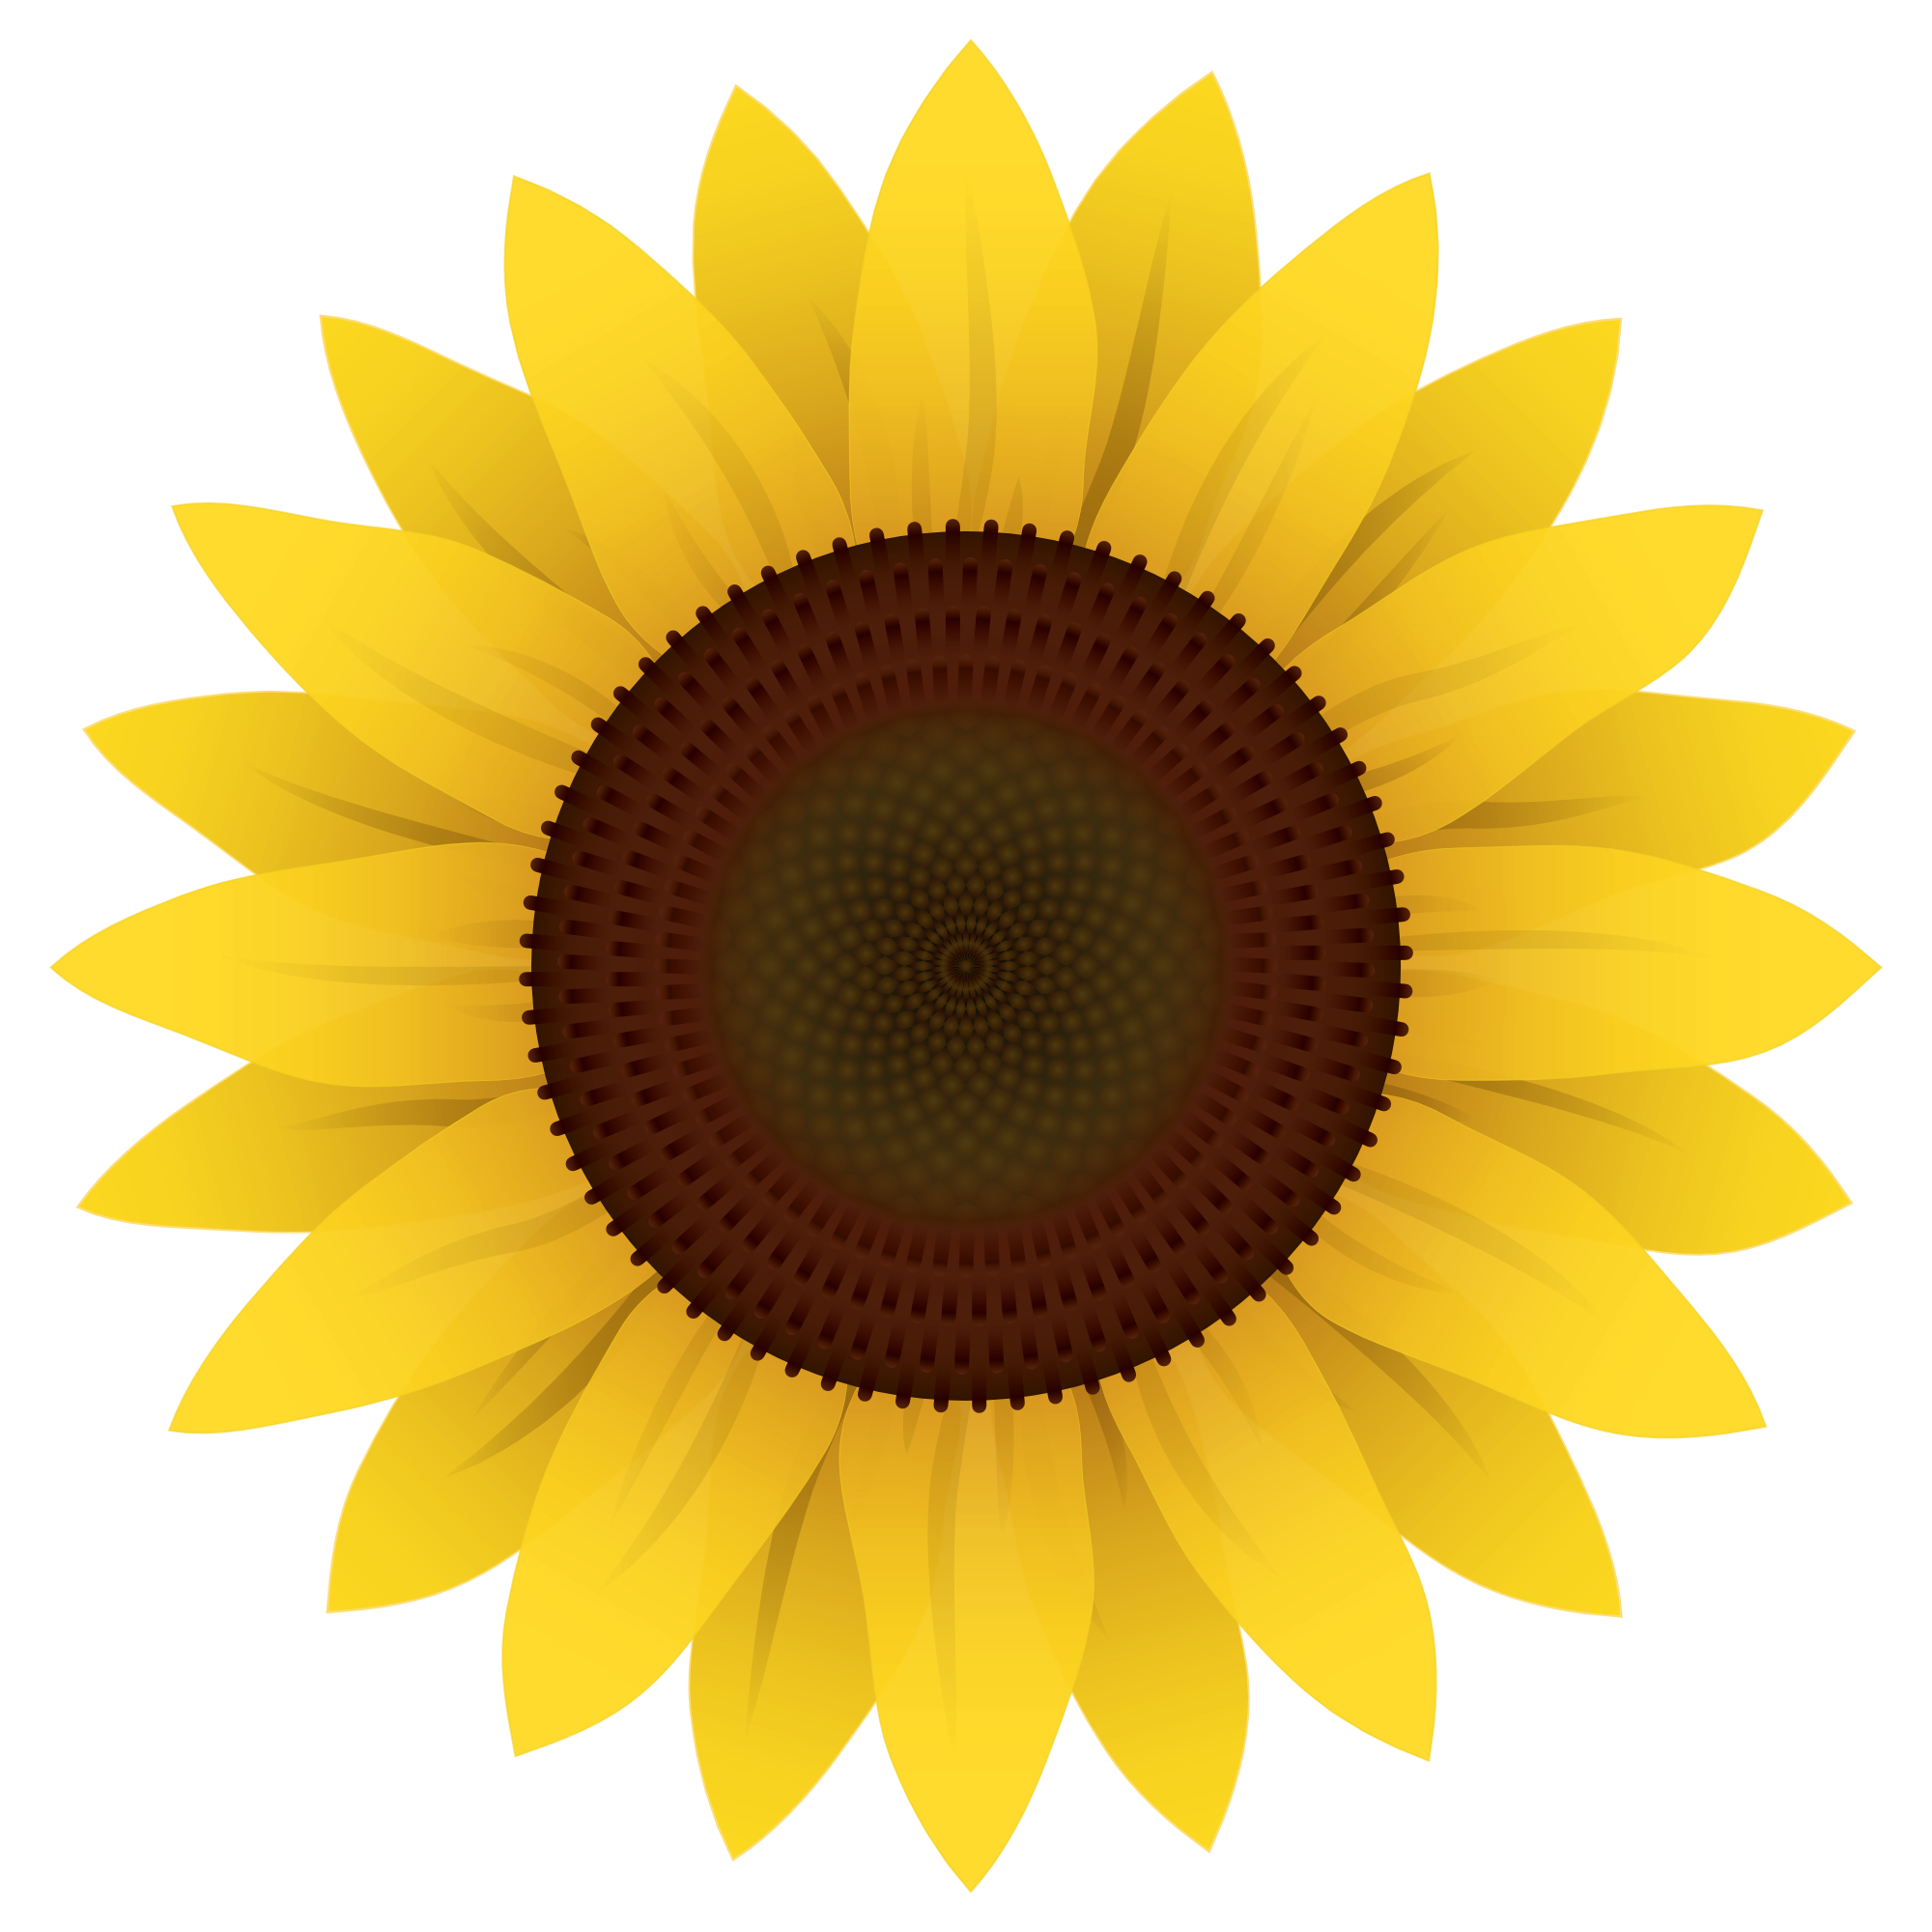 Download Sunflower Vector PNG Image for Free.